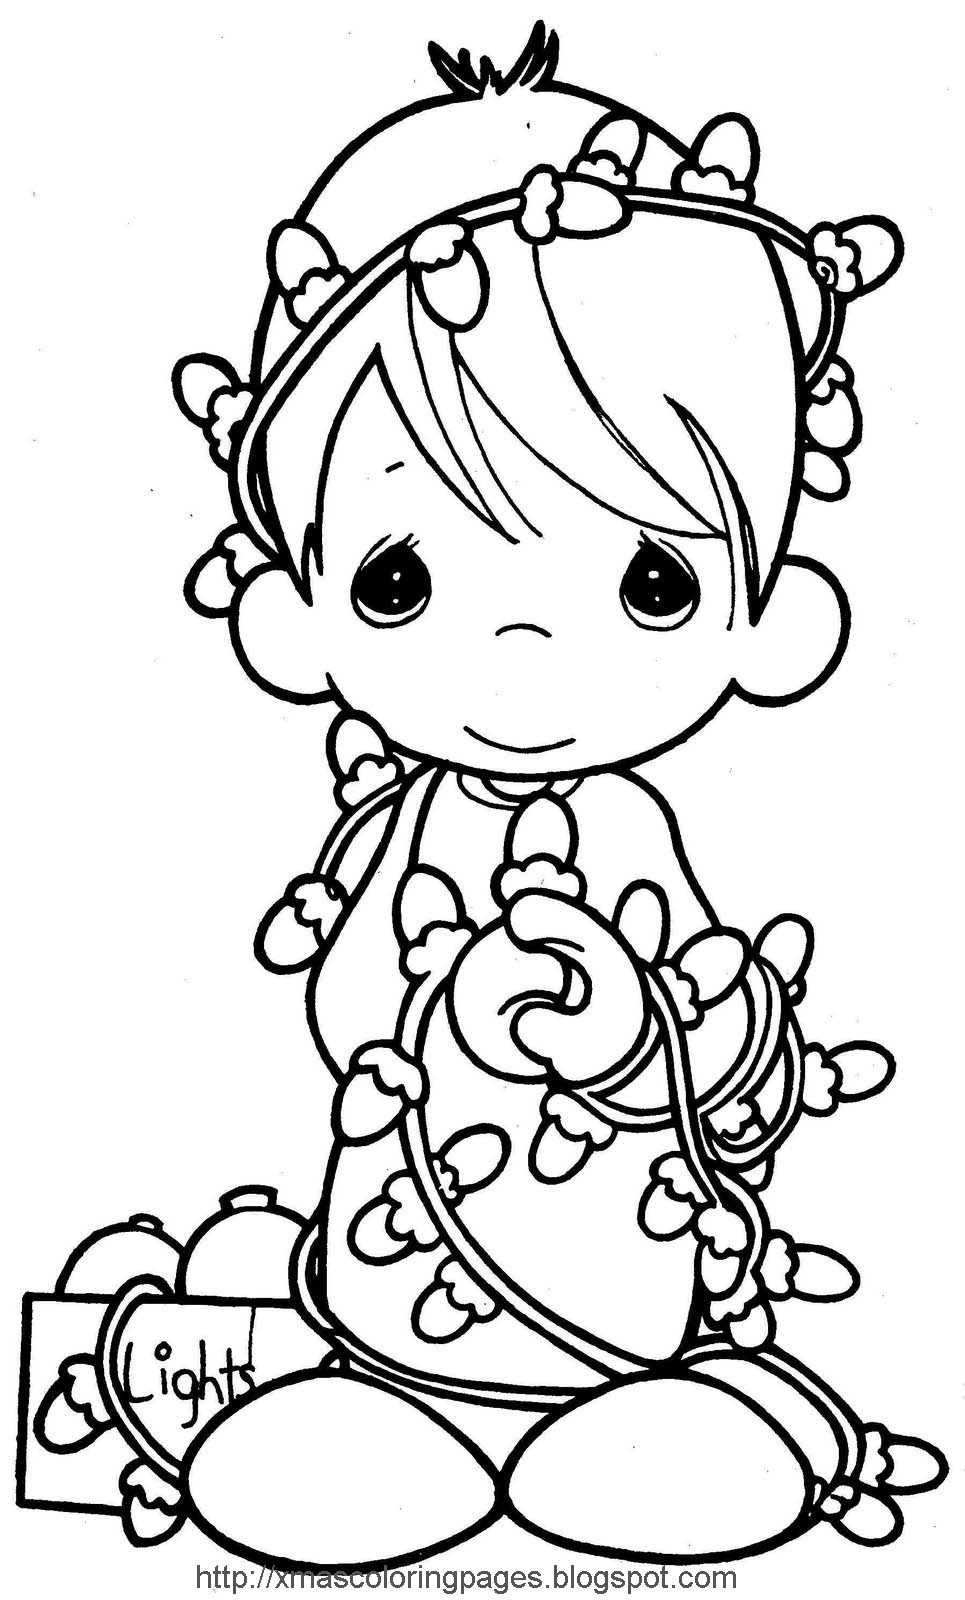 Christmas Angel Coloring Pages To Print With Alic E Me